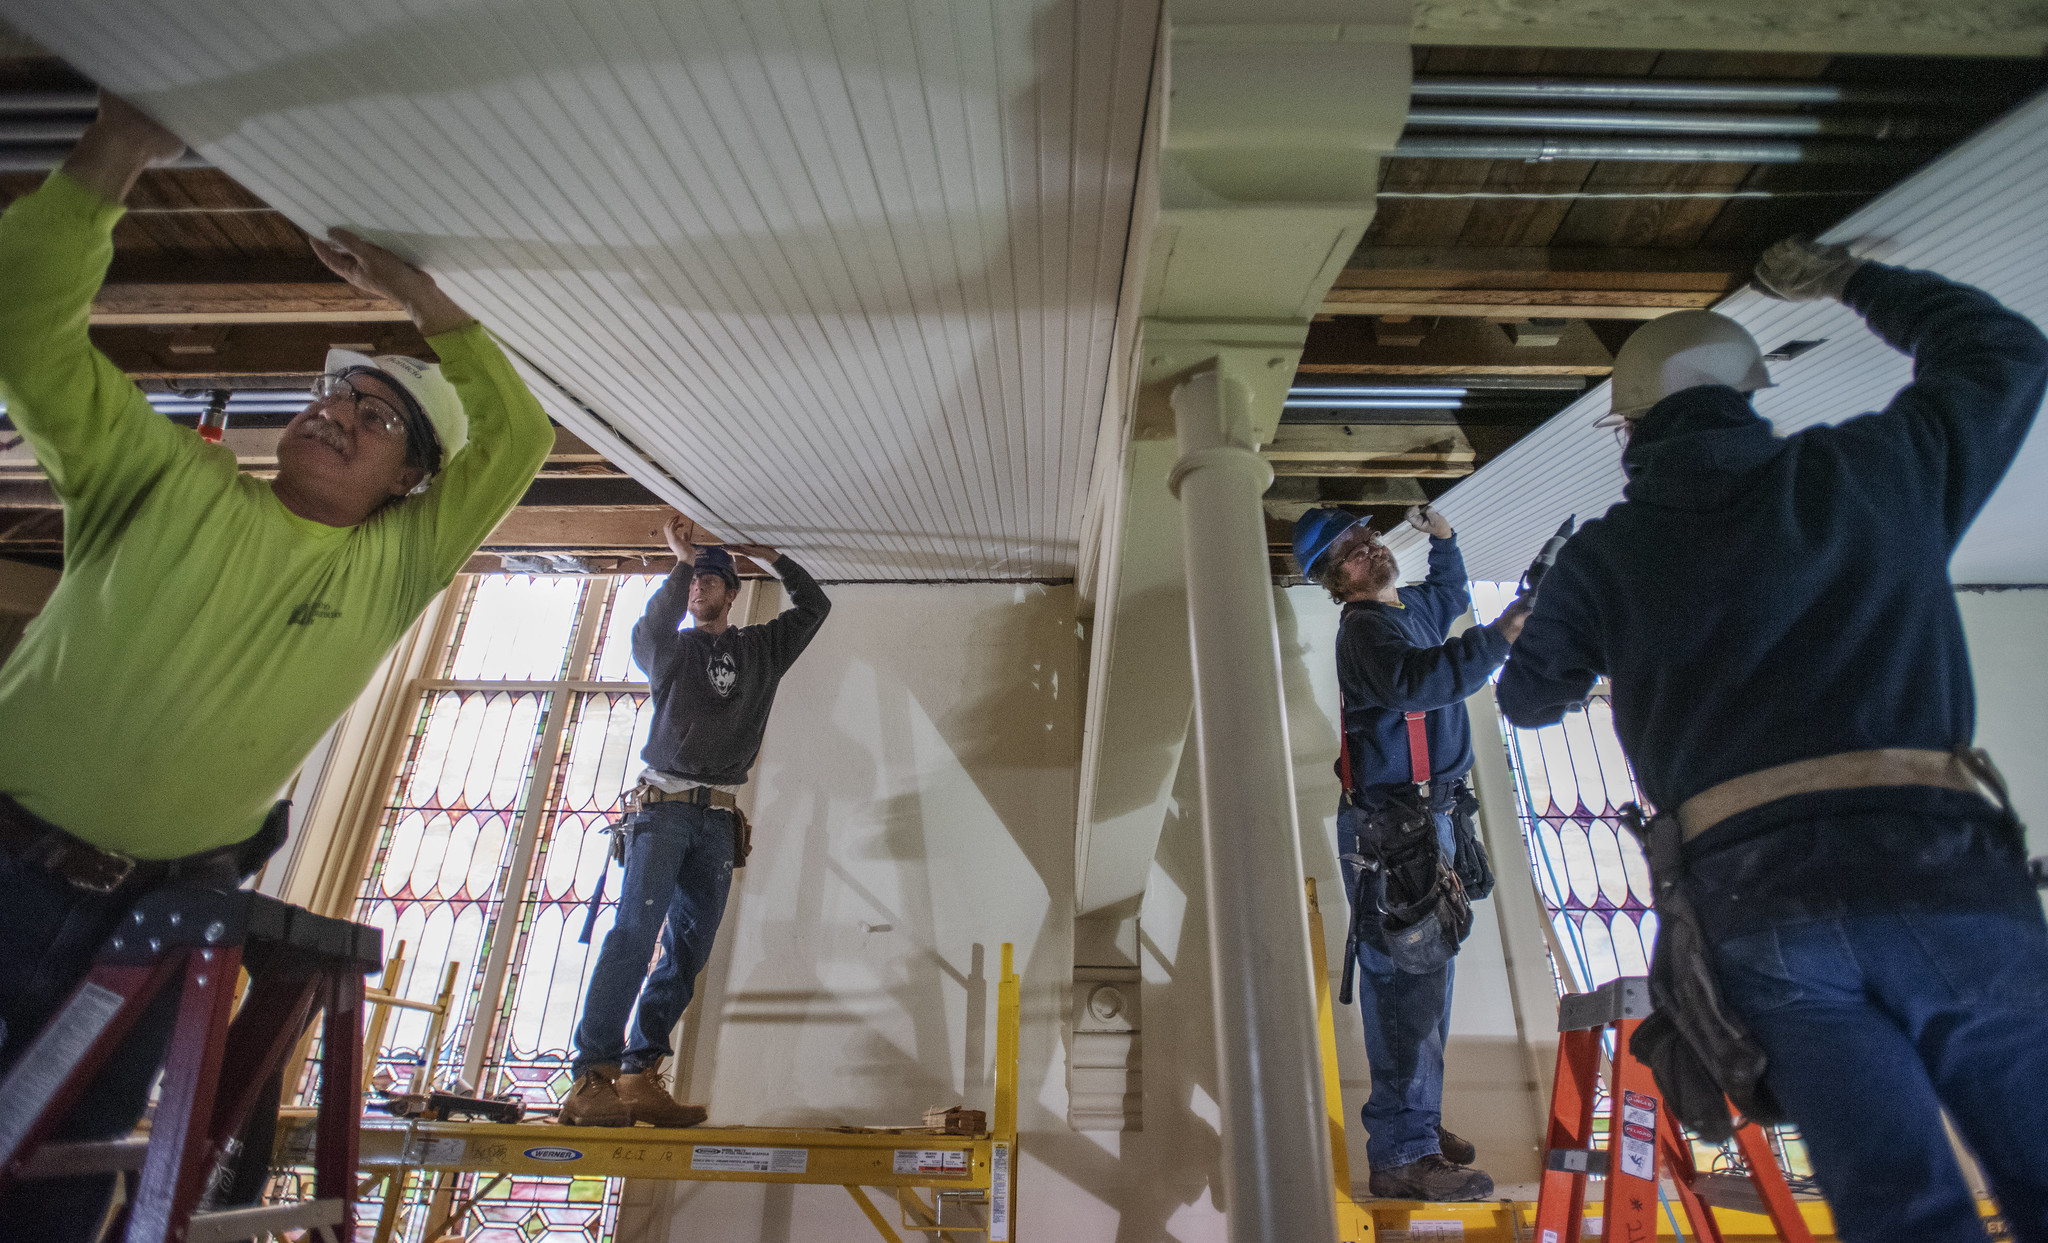 Construction workers attach wainscotting under the balcony during construction at UPH Monday, Novermber 11, 2019. A construction worker said it would take 300 miles of wainscotting to complete the project. Photo credit: Kate Penn - Proctors